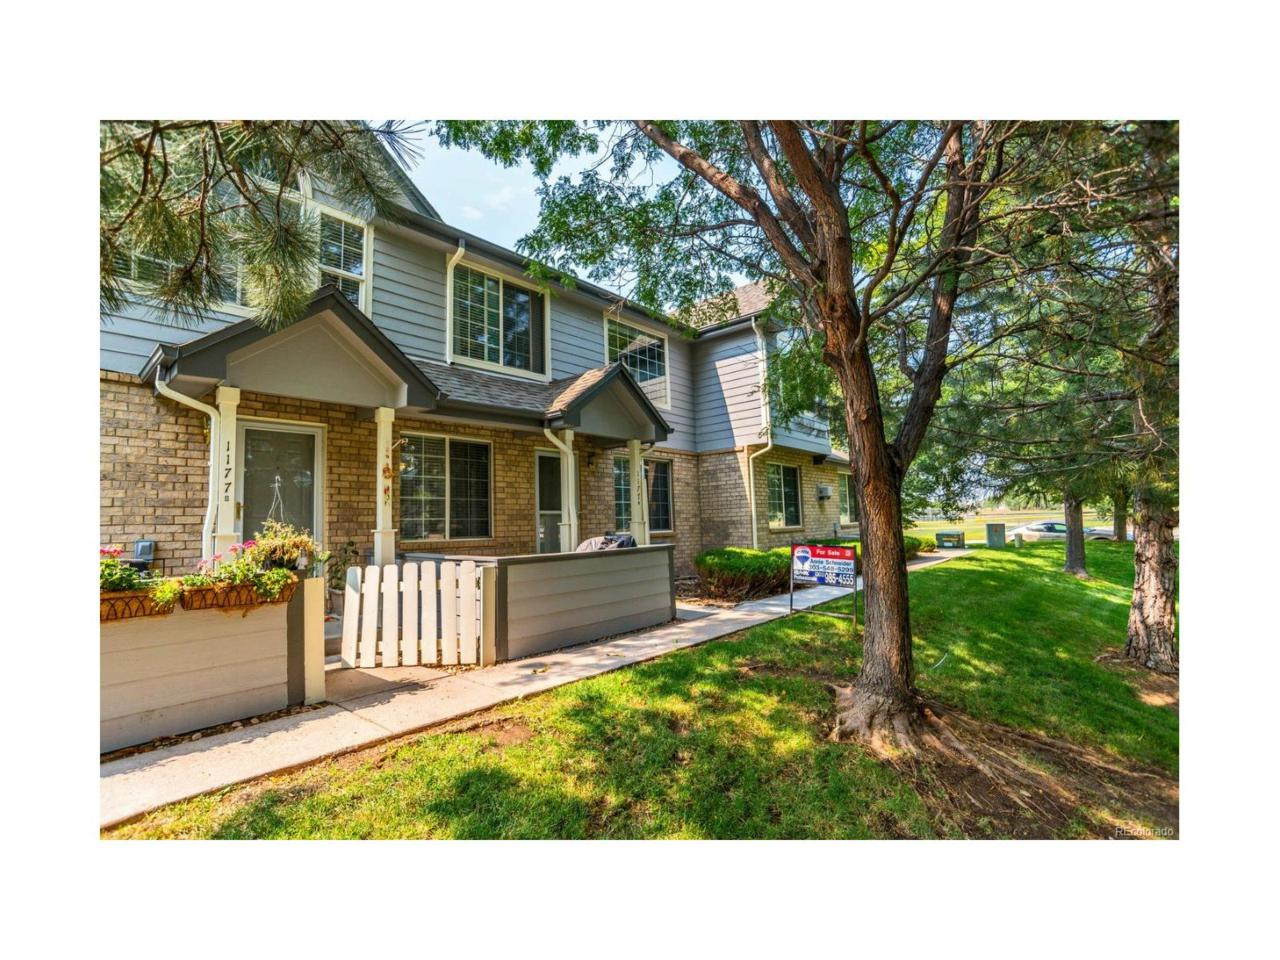 1177 W 112th Avenue C, Westminster, CO 80234 (MLS #4976826) :: 8z Real Estate